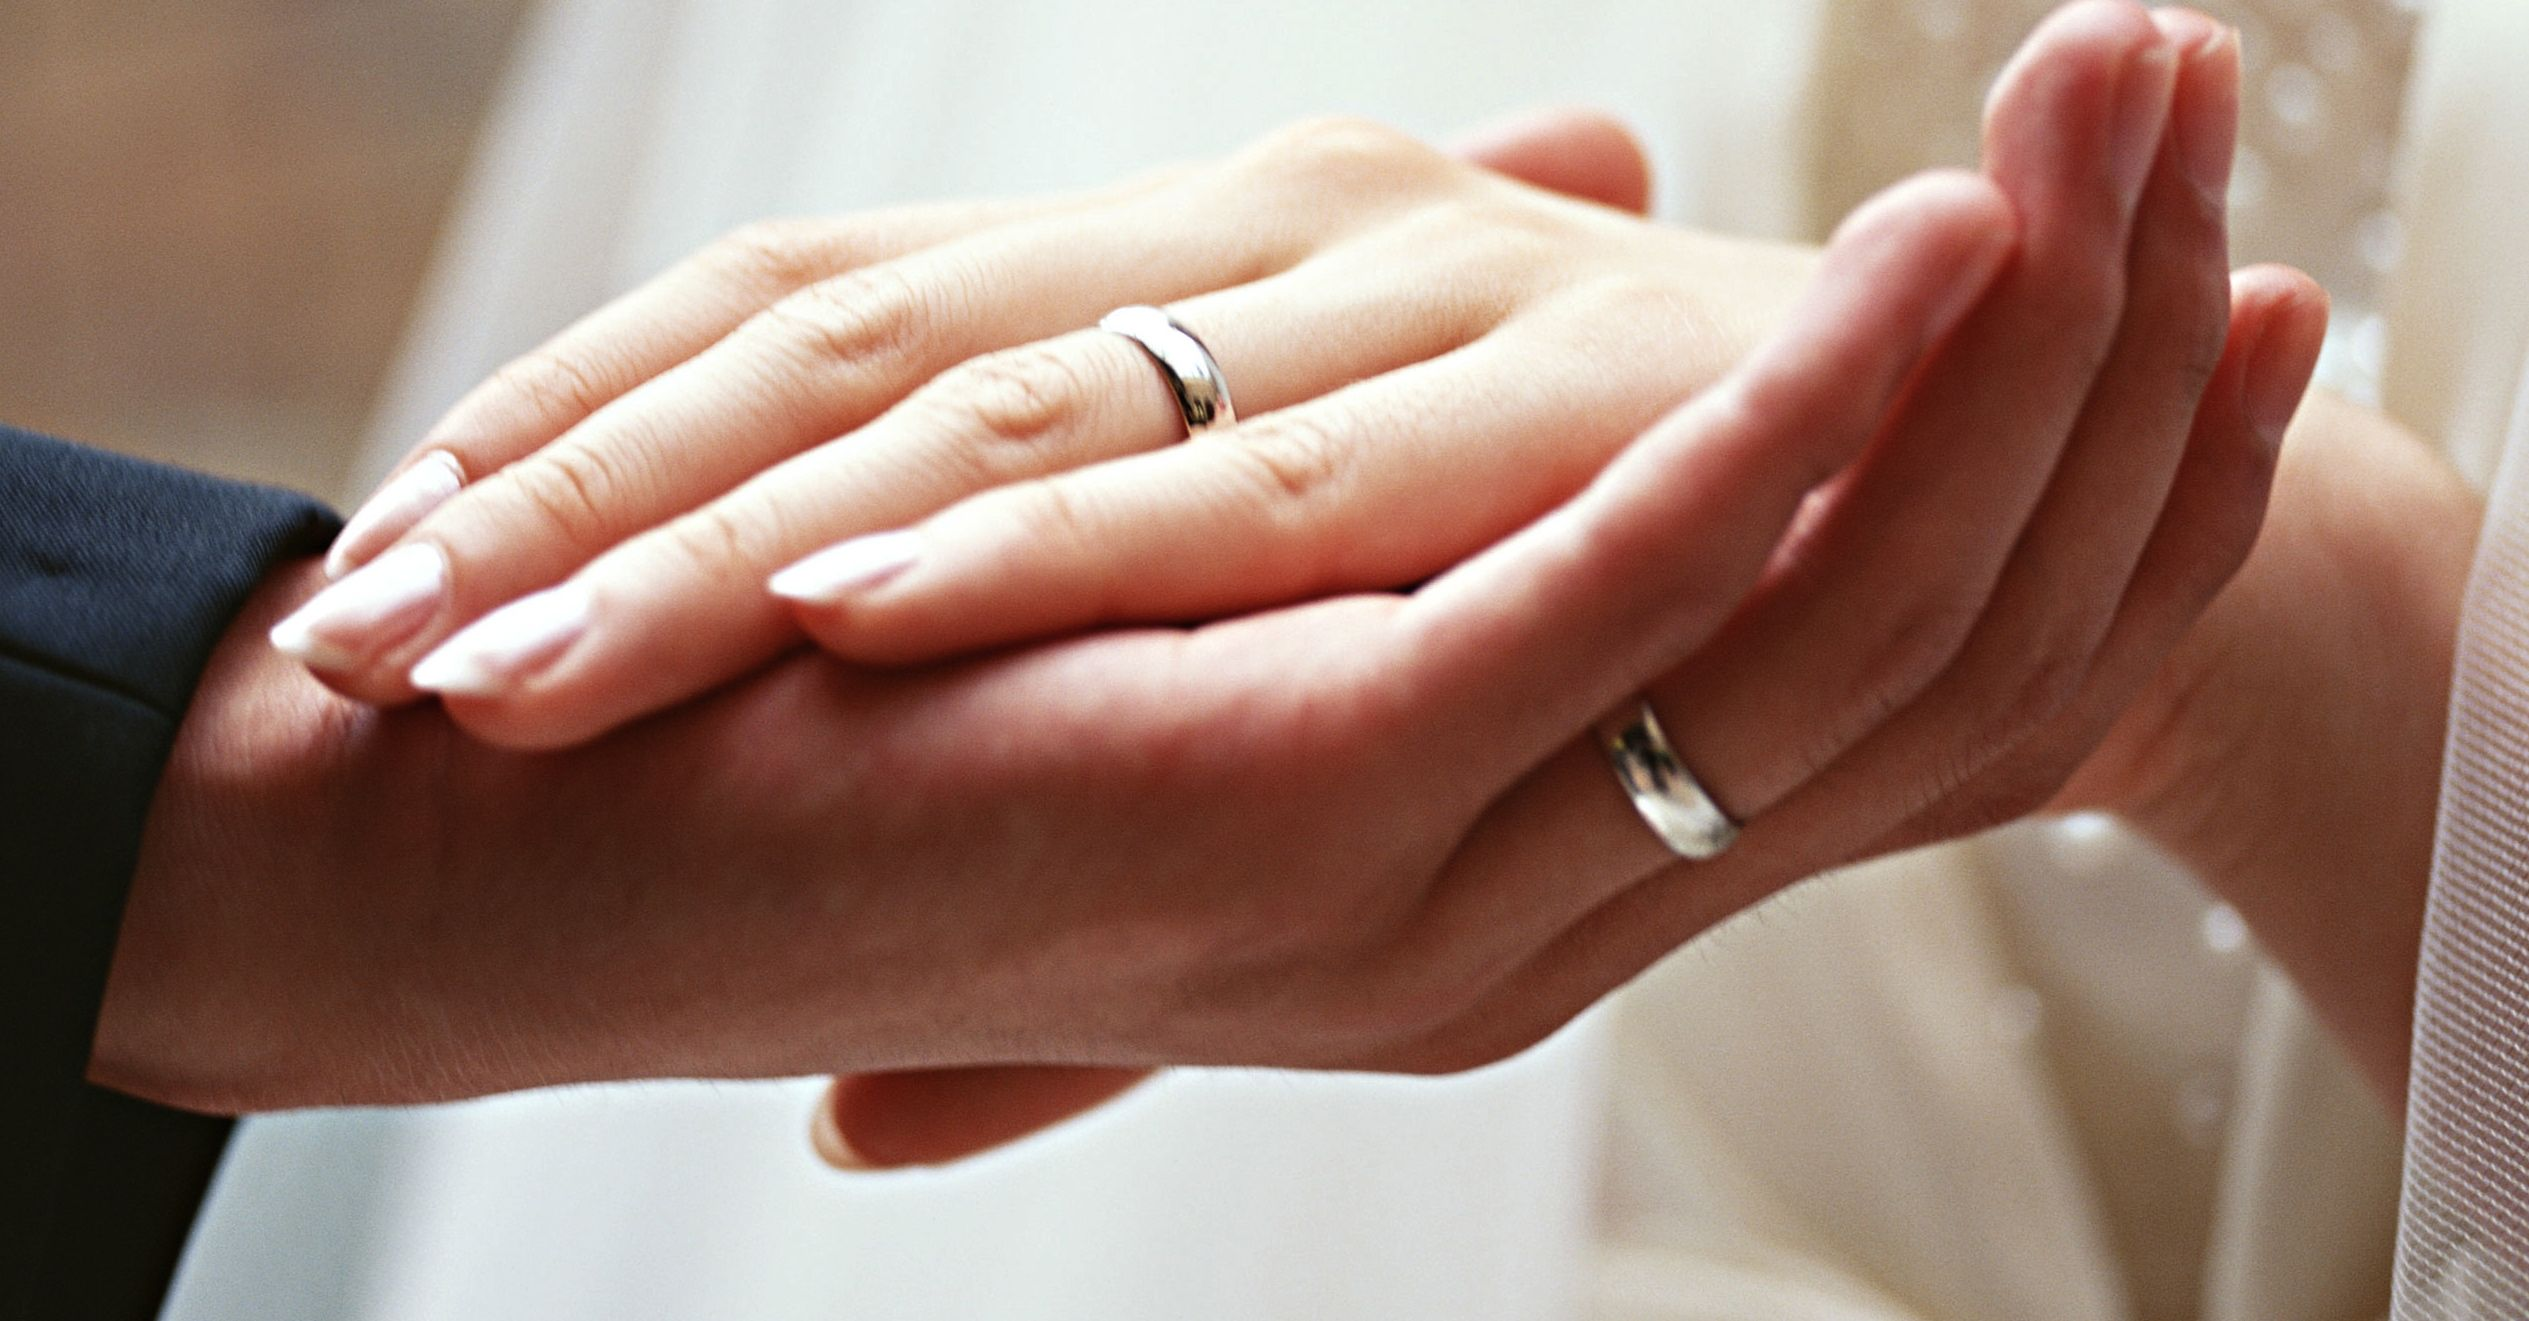 Plain Metal Wedding Bands Are The Right Selection Of People Looking For